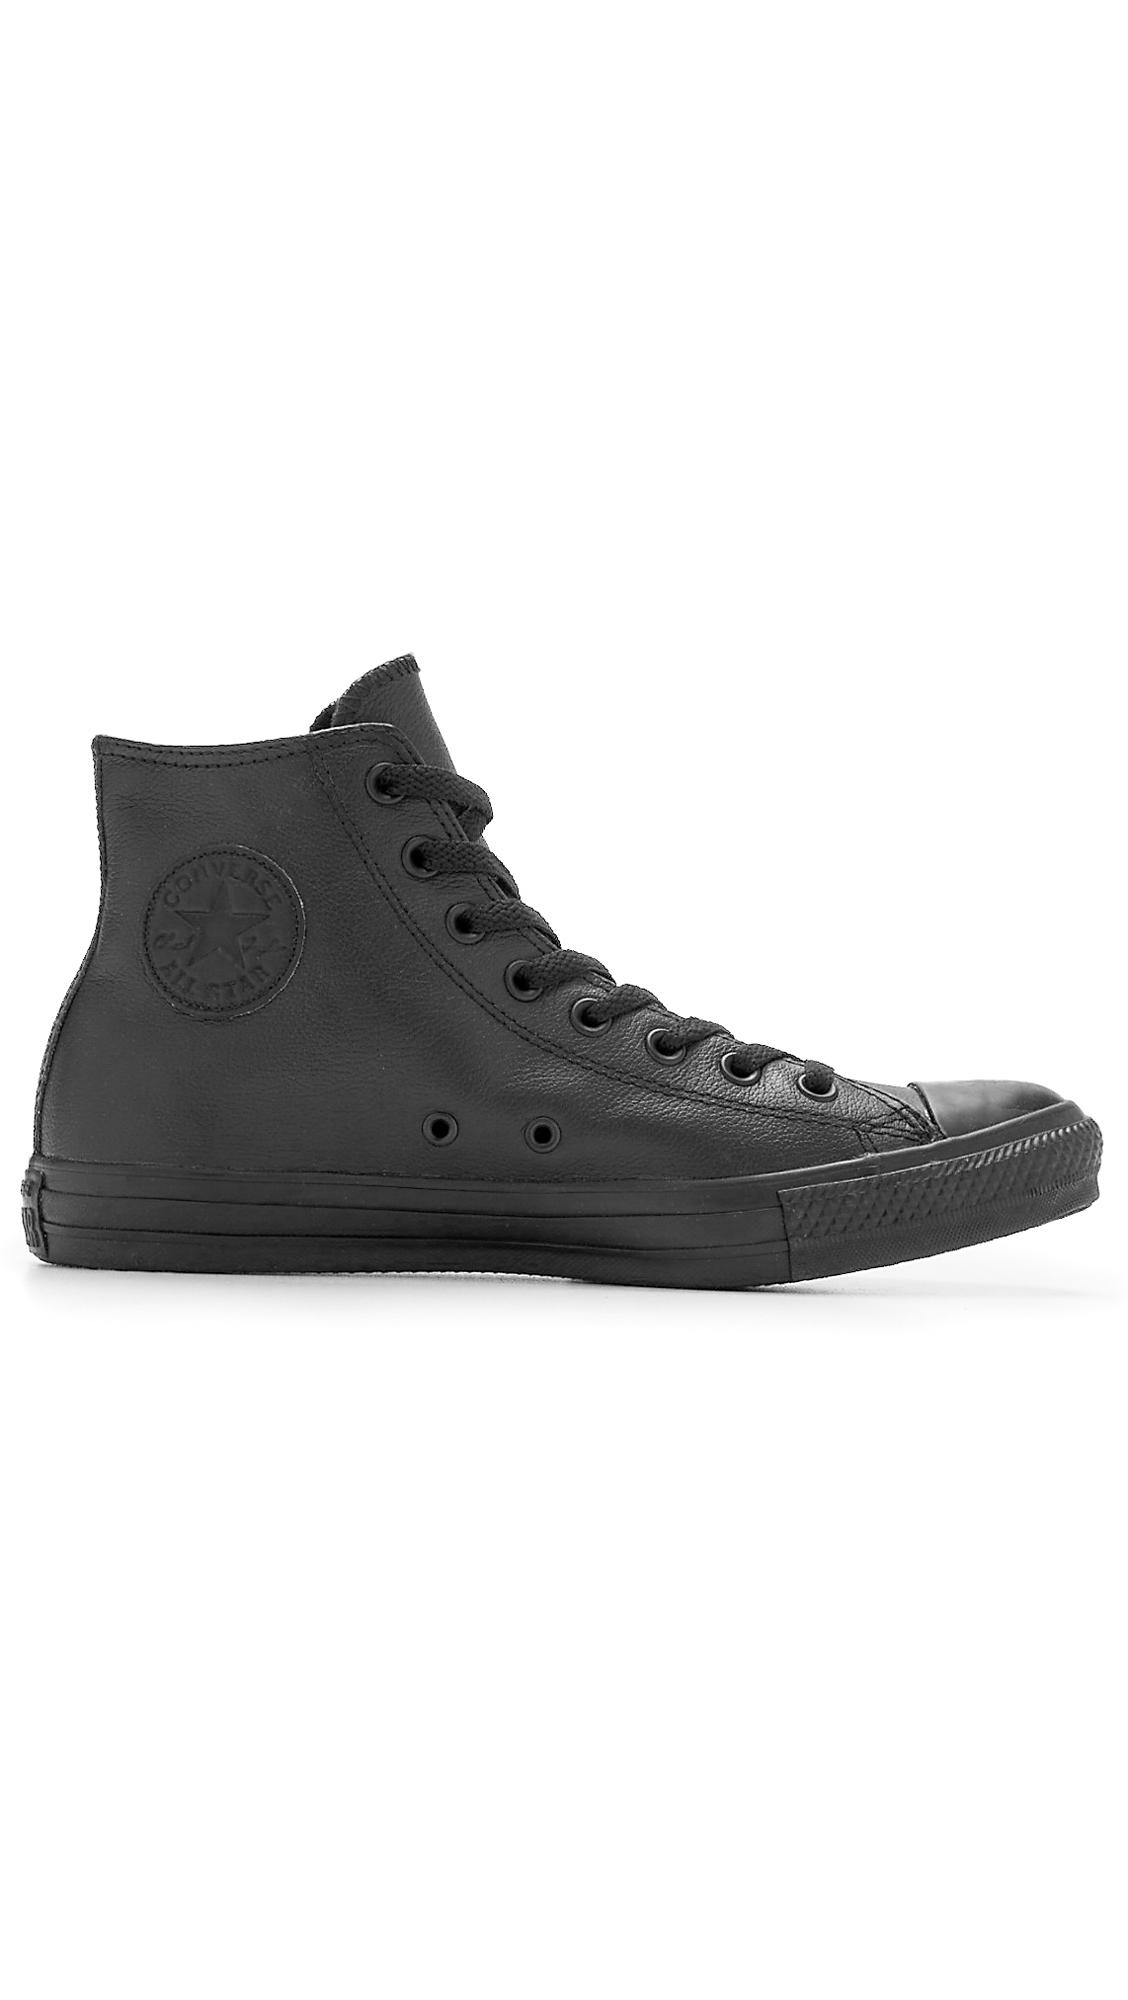 baad370e170b Lyst Converse Chuck Taylor All Star Leather Hi Top Sneakers In